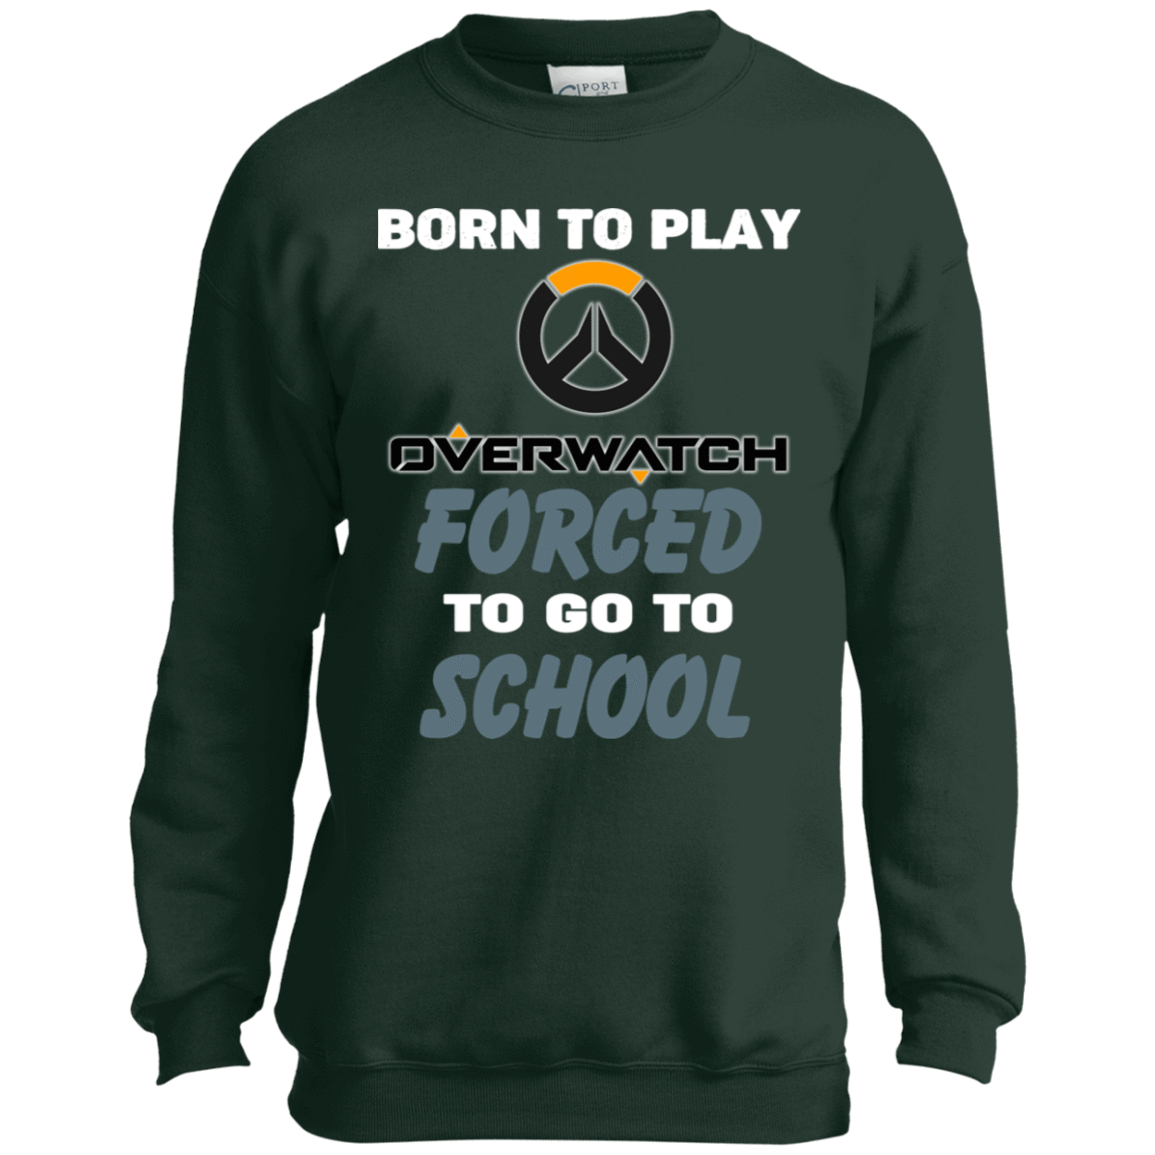 Born To Play Overwatch Forced To Go To School 58-329-74209660-35270 - Tee Ript